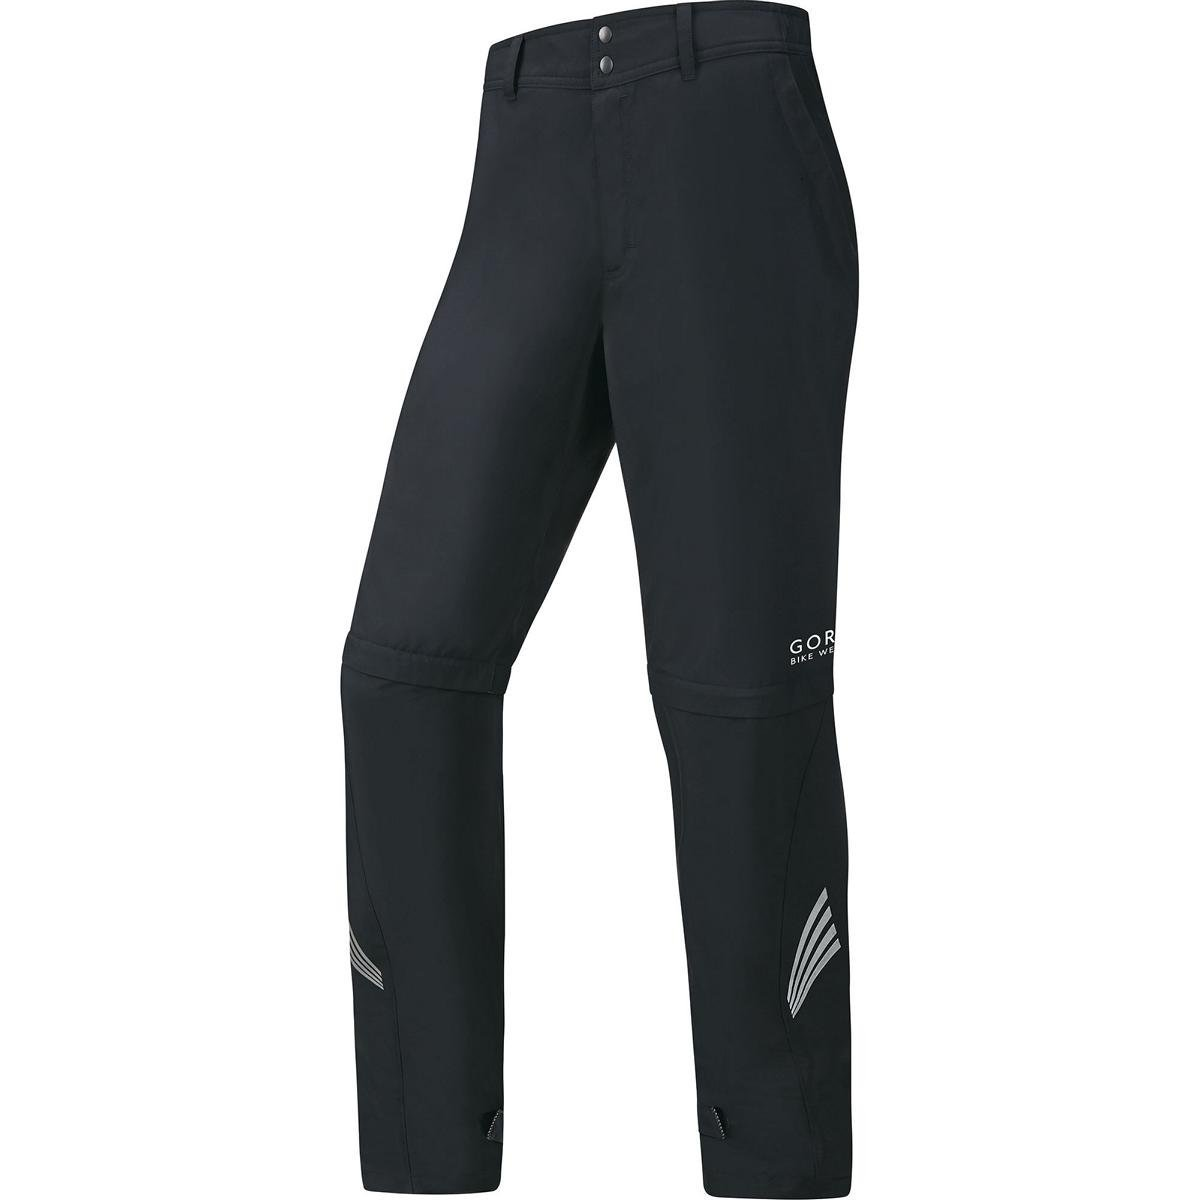 Gambe staccabili GORE WINDSTOPPER Active Shell GORE BIKE WEAR Antivento PWZELE WS AS Zip-Off Pantaloni Ciclismo Uomo